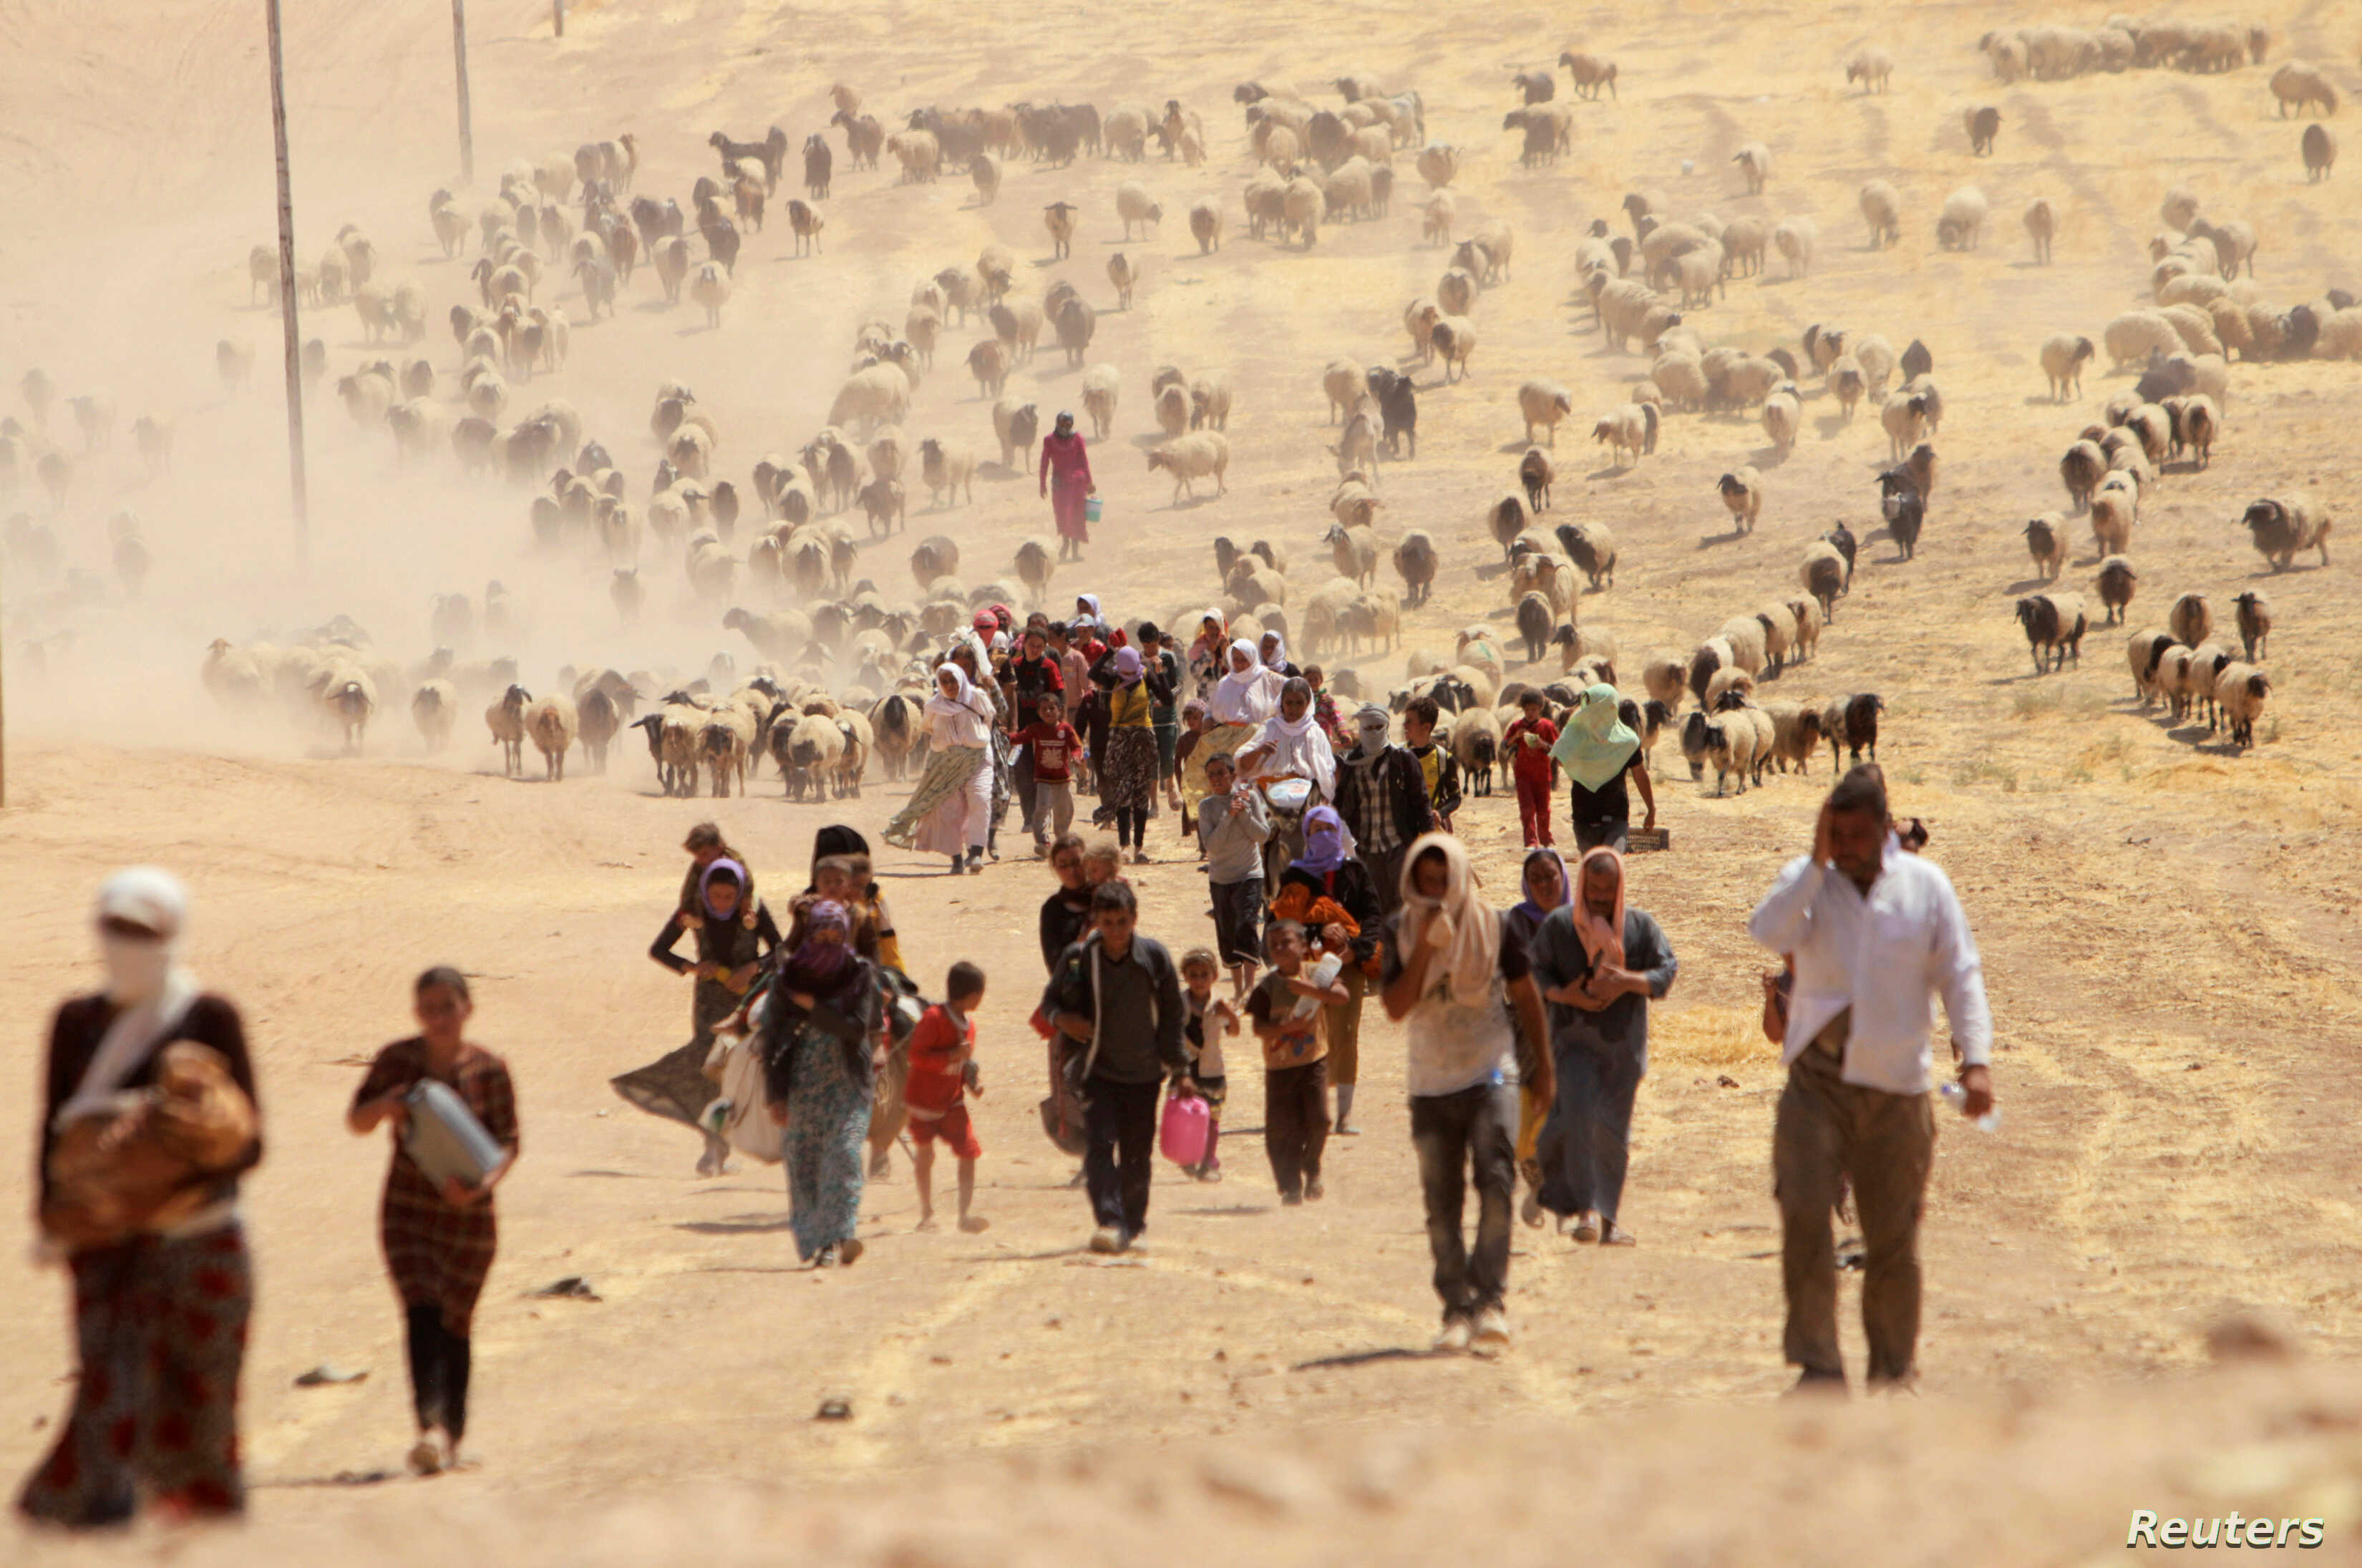 Displaced people from the minority Yazidi sect, fleeing violence from forces loyal to the Islamic State in Sinjar town, walk towards the Syrian border, on the outskirts of Sinjar mountain, near the Syrian border town of Elierbeh of Al-Hasakah Governo...